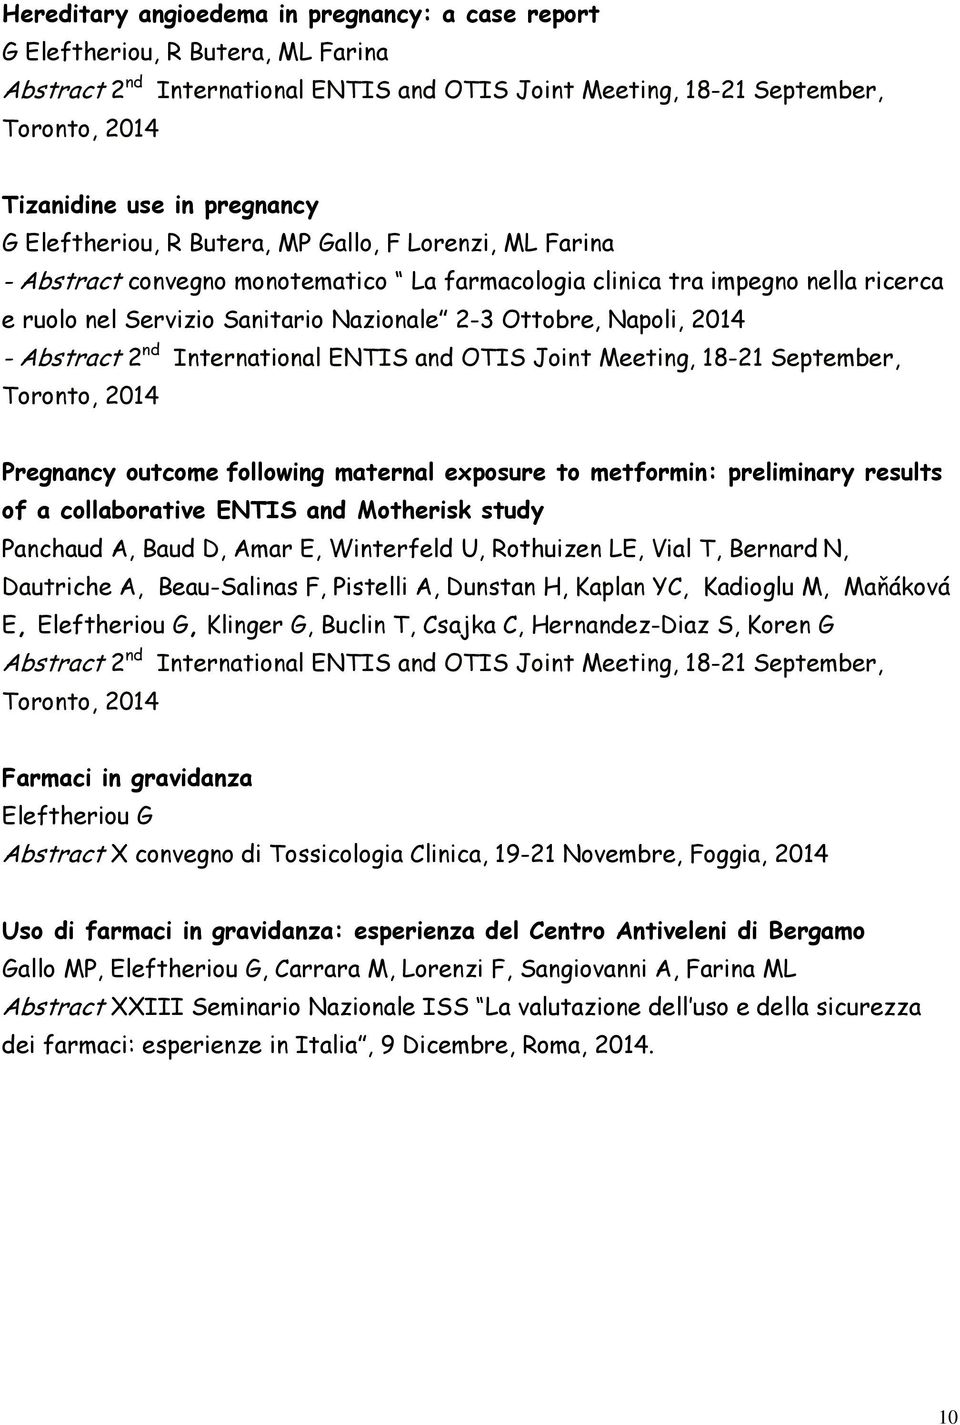 Ottobre, Napoli, 2014 - Abstract 2 nd International ENTIS and OTIS Joint Meeting, 18-21 September, Toronto, 2014 Pregnancy outcome following maternal exposure to metformin: preliminary results of a